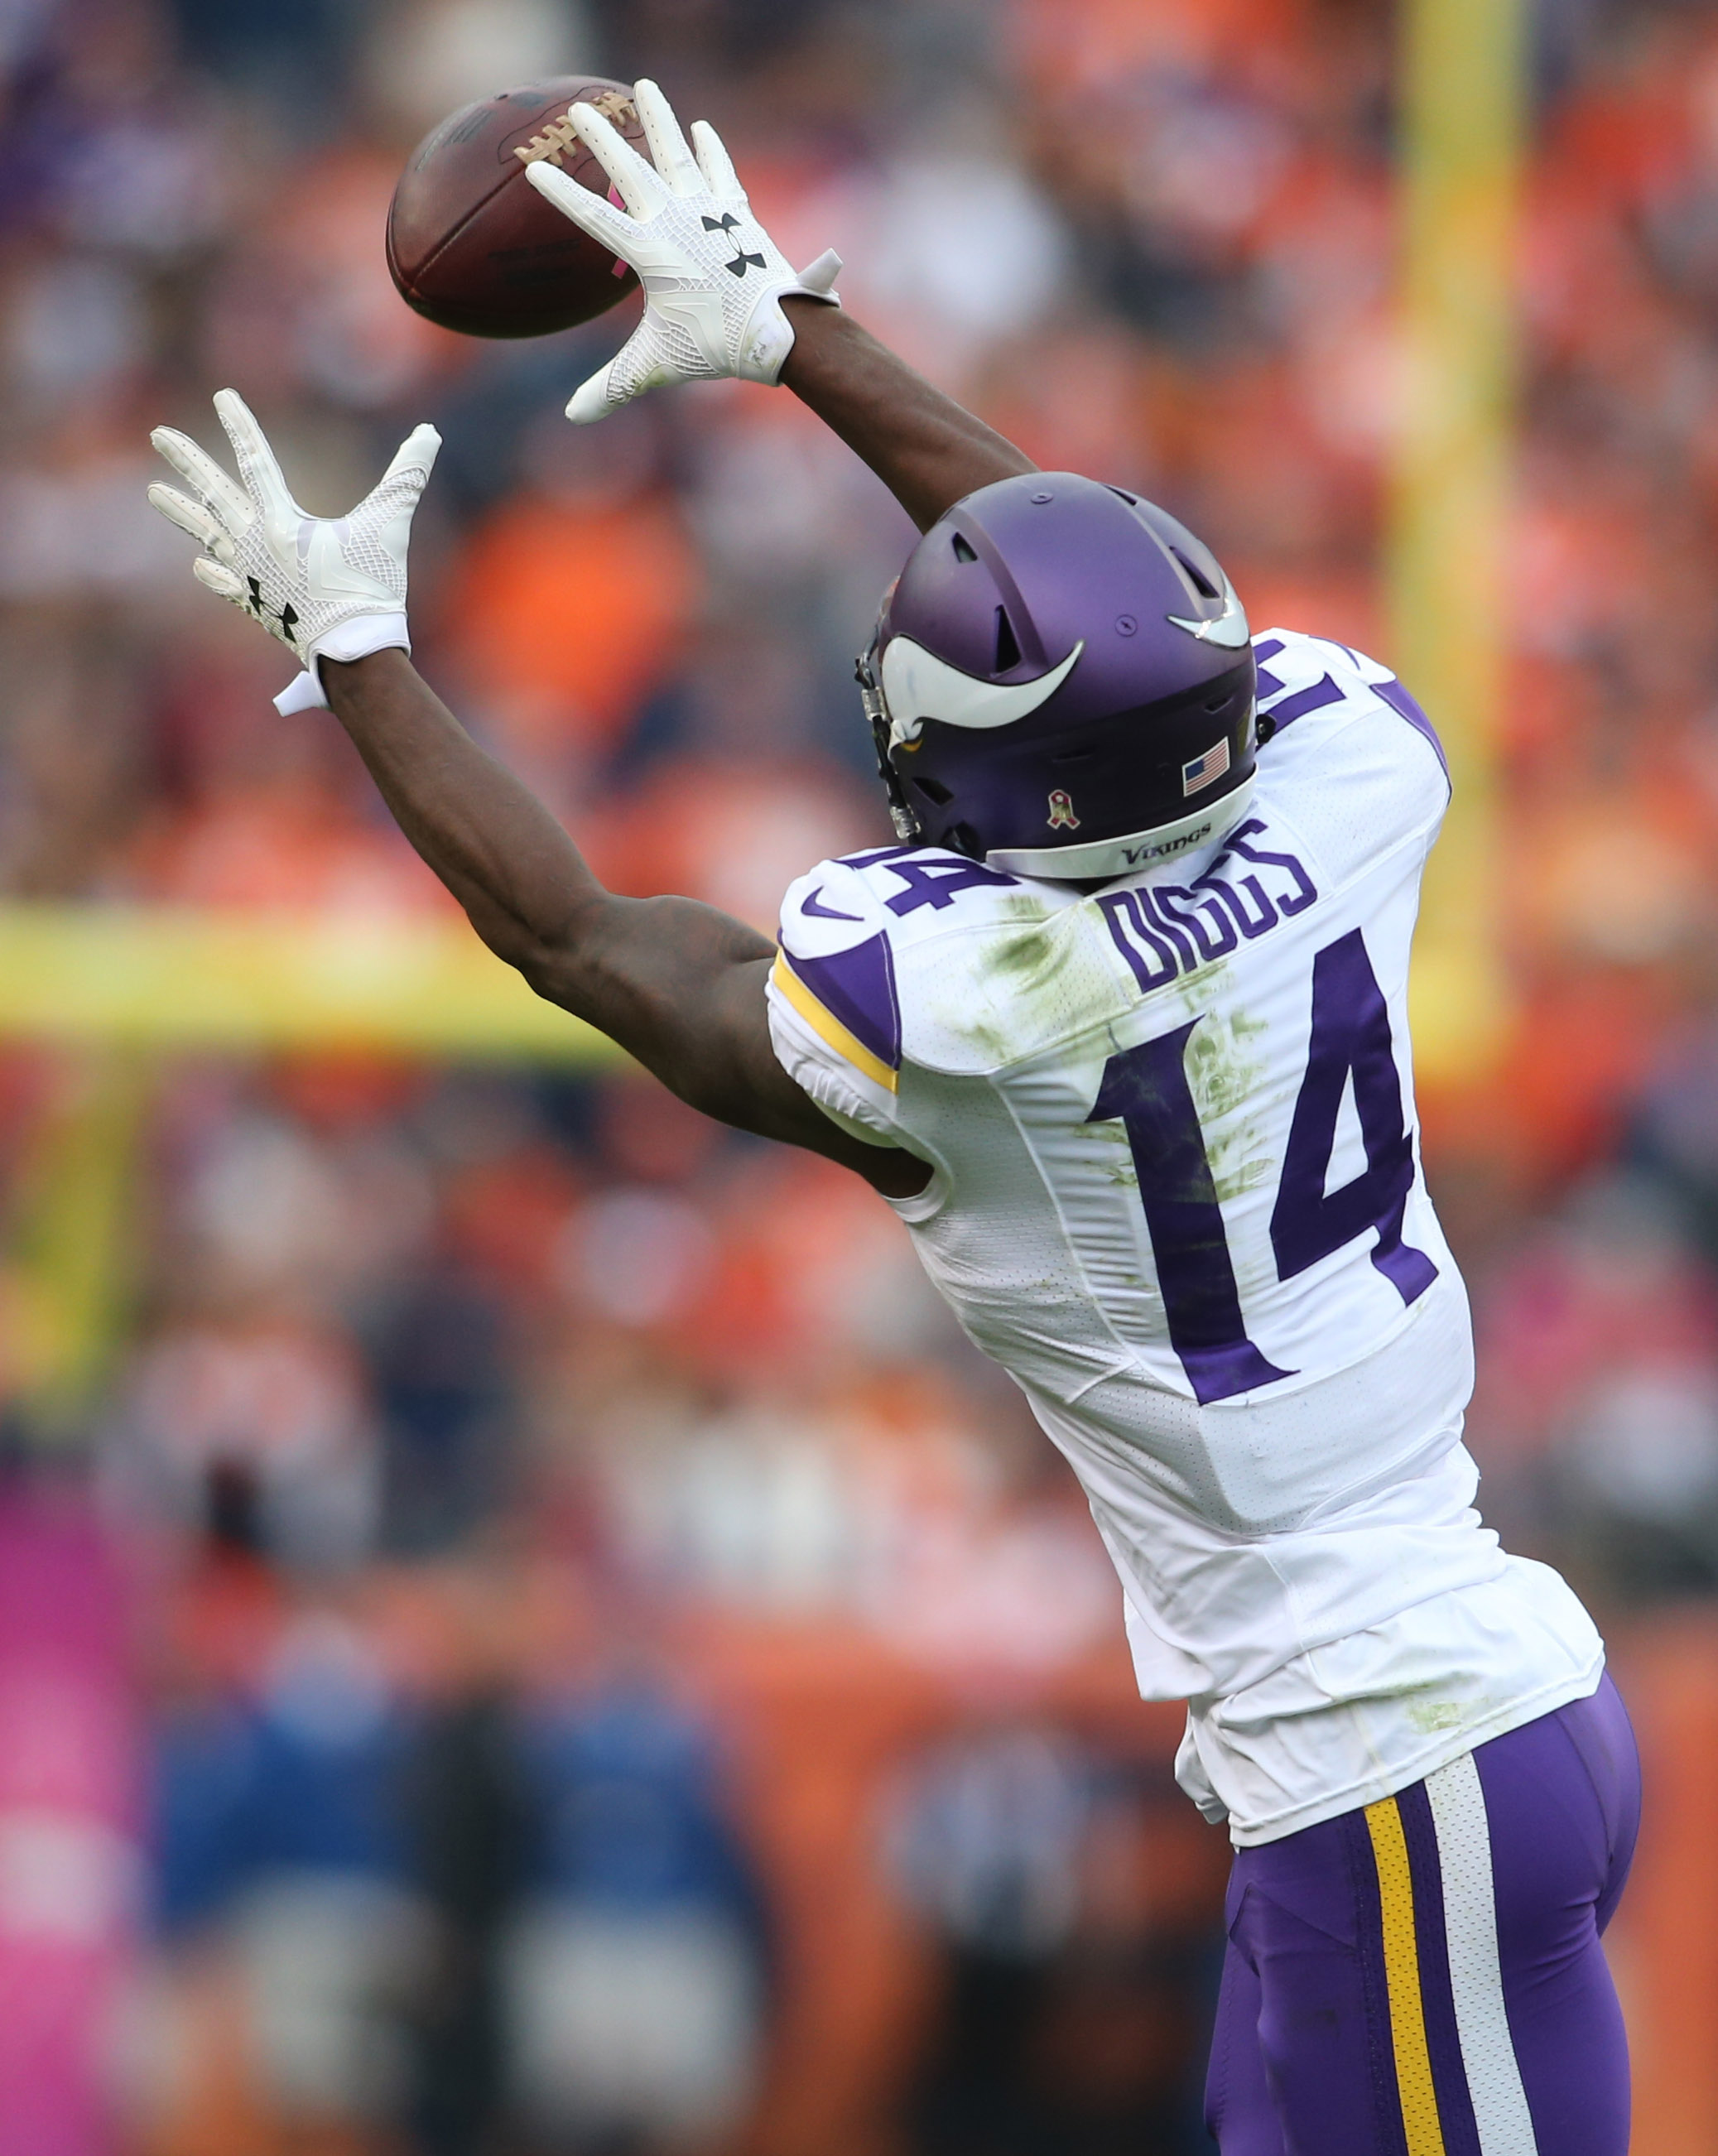 Stefon Diggs came out of nowhere last week catching 6 passes for 87 yards on 10 targets.